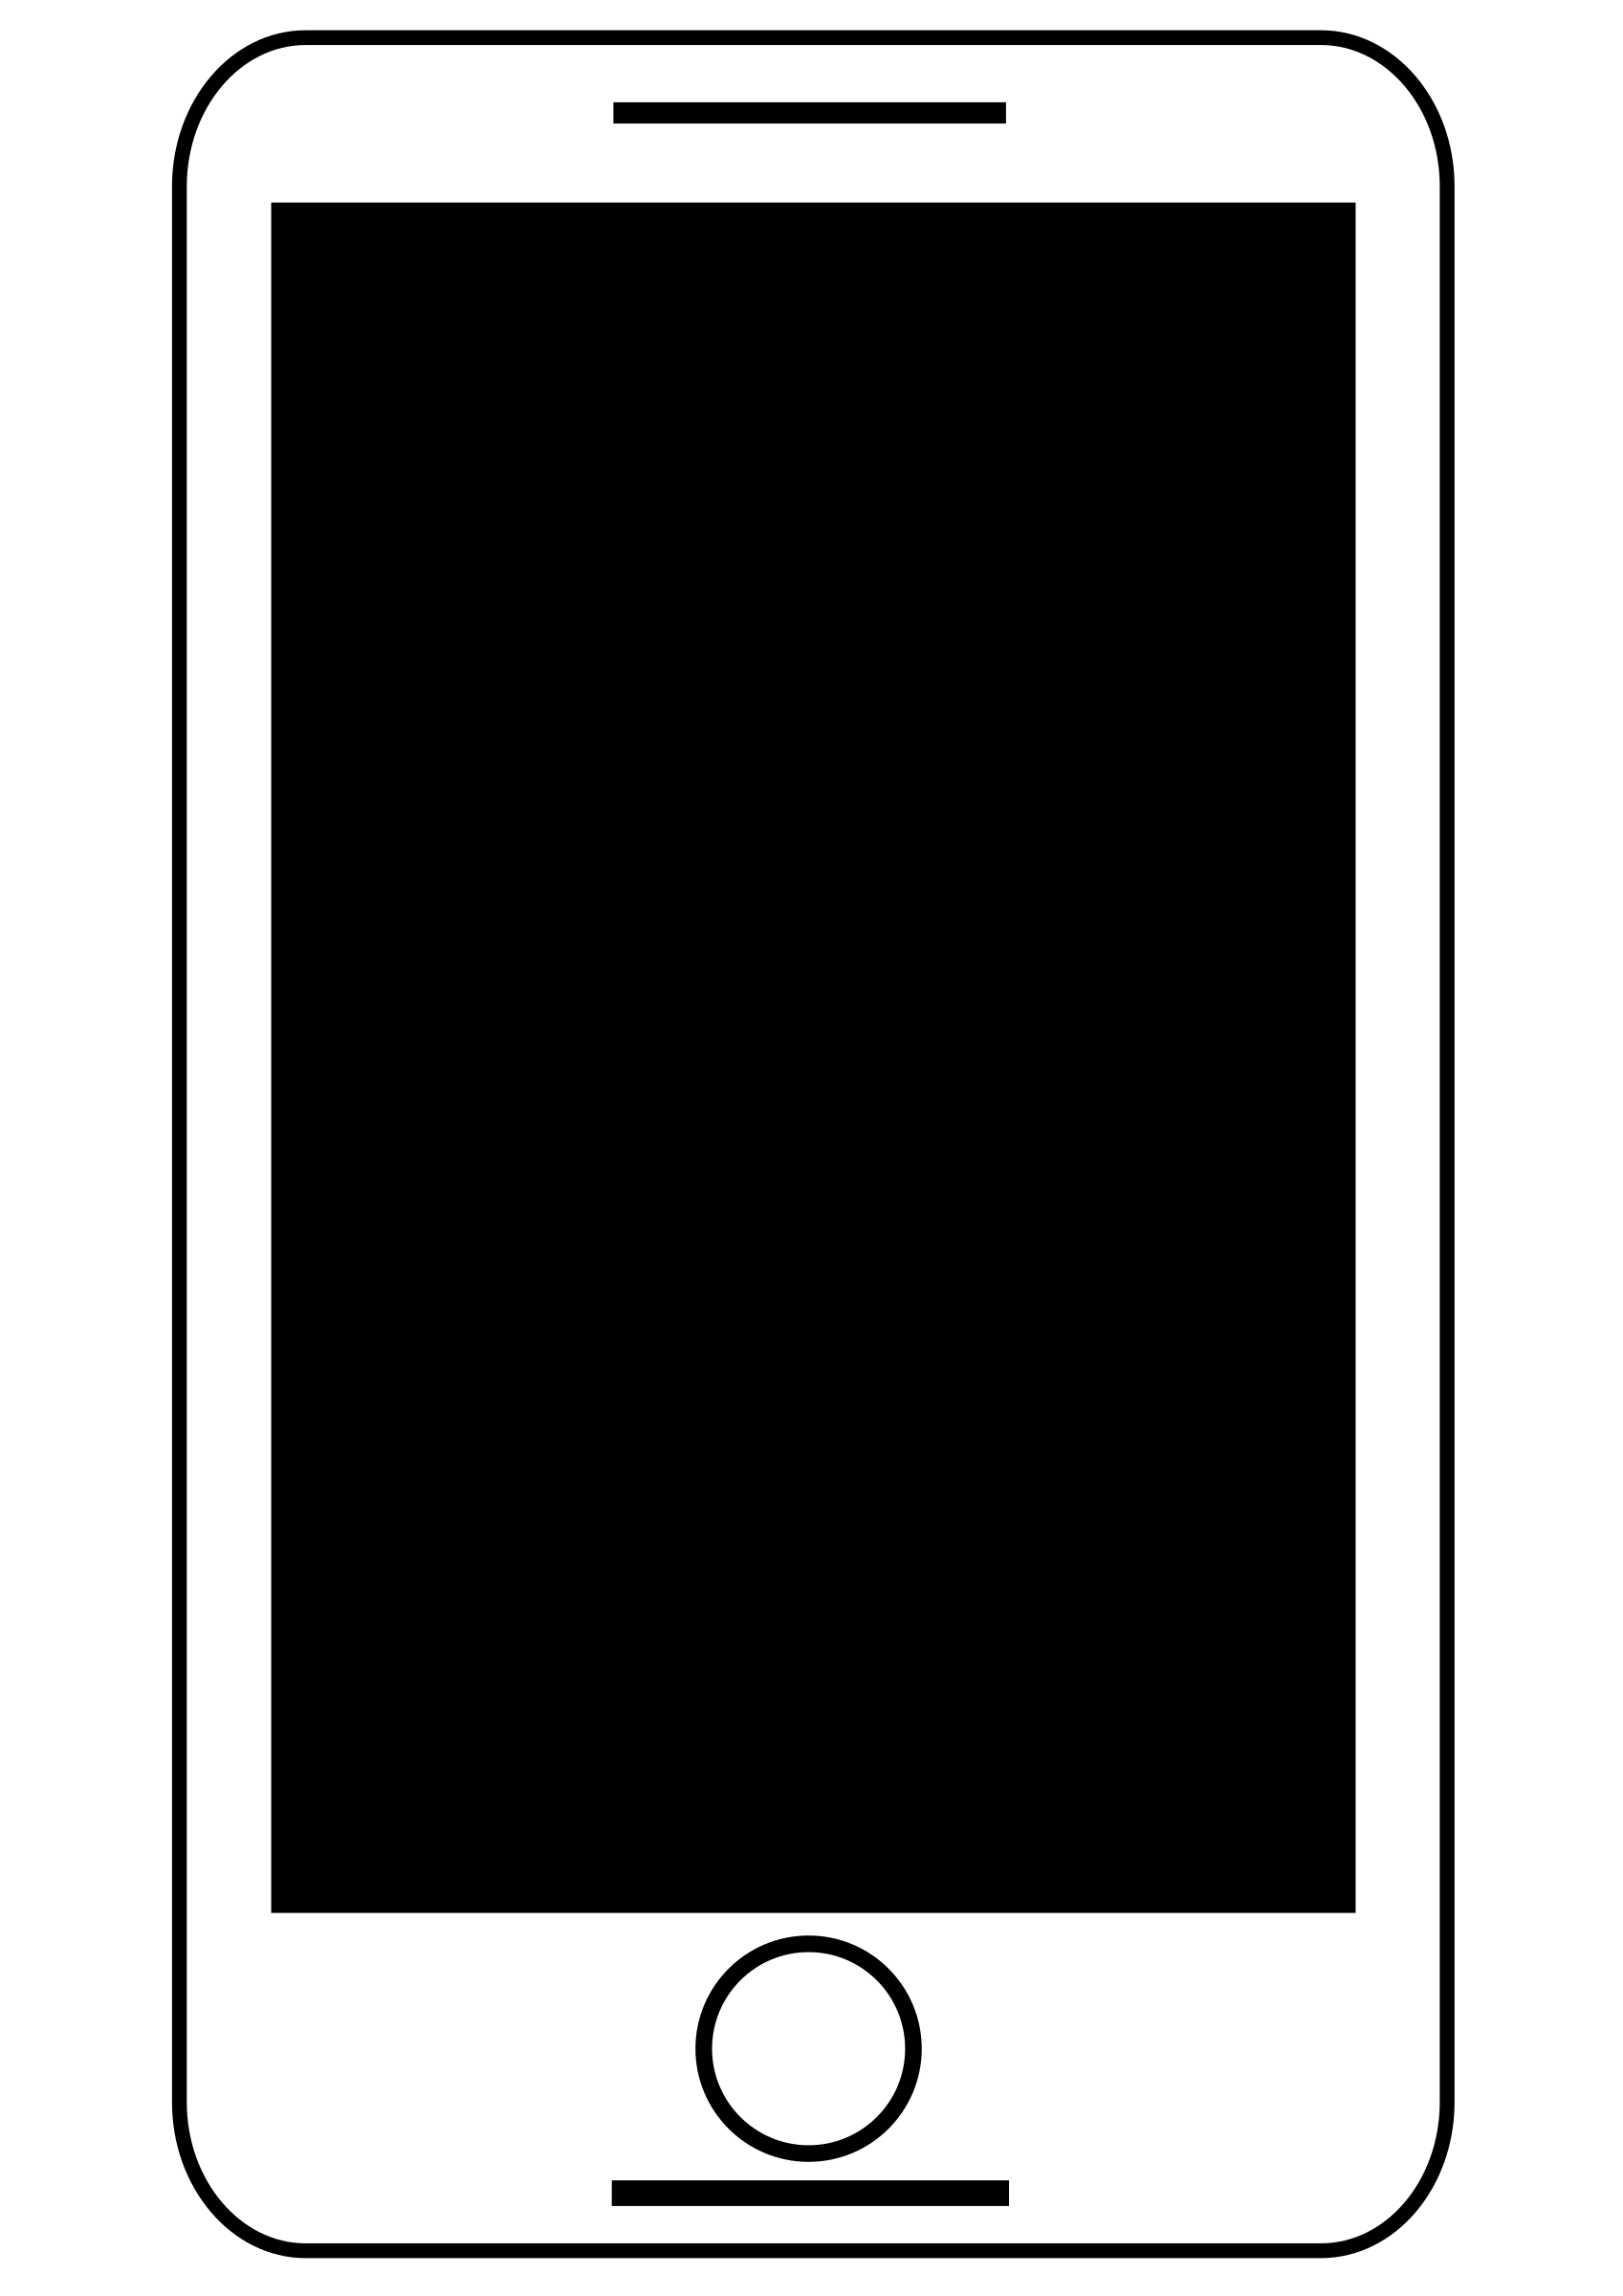 Animated smart phone black. Telephone clipart communication technology